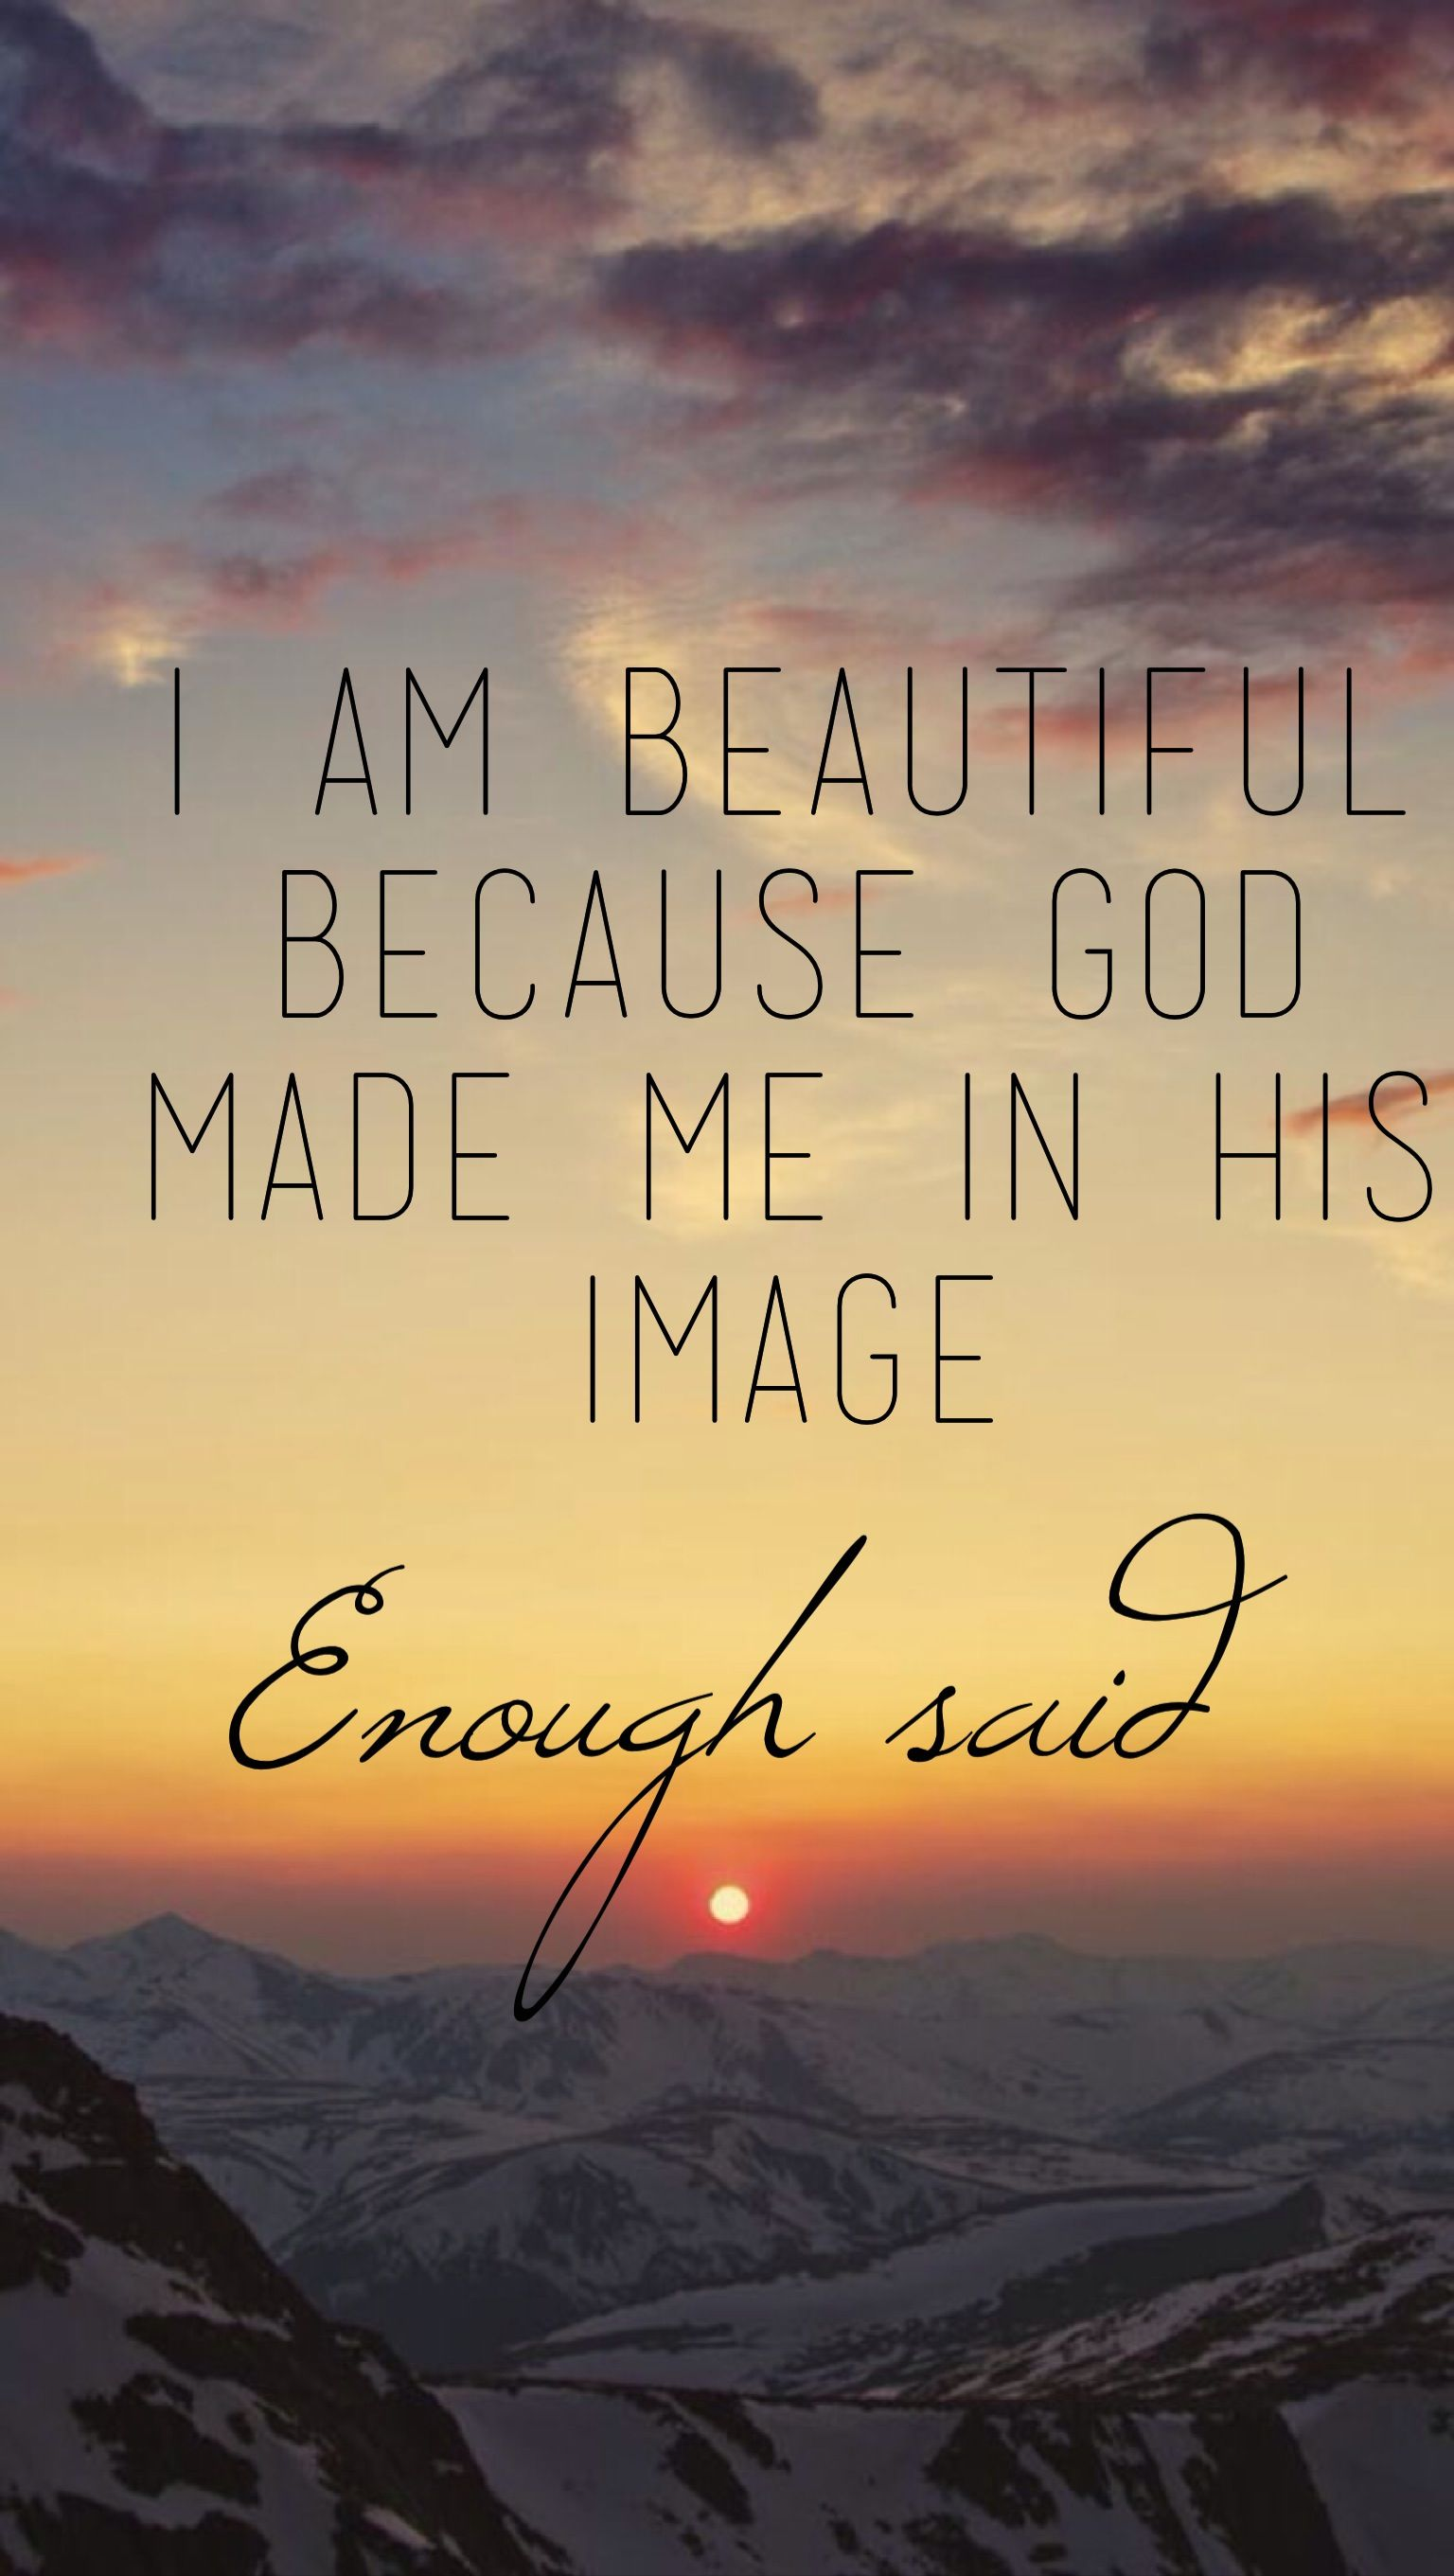 I am beautiful because God made me in his image. Enough